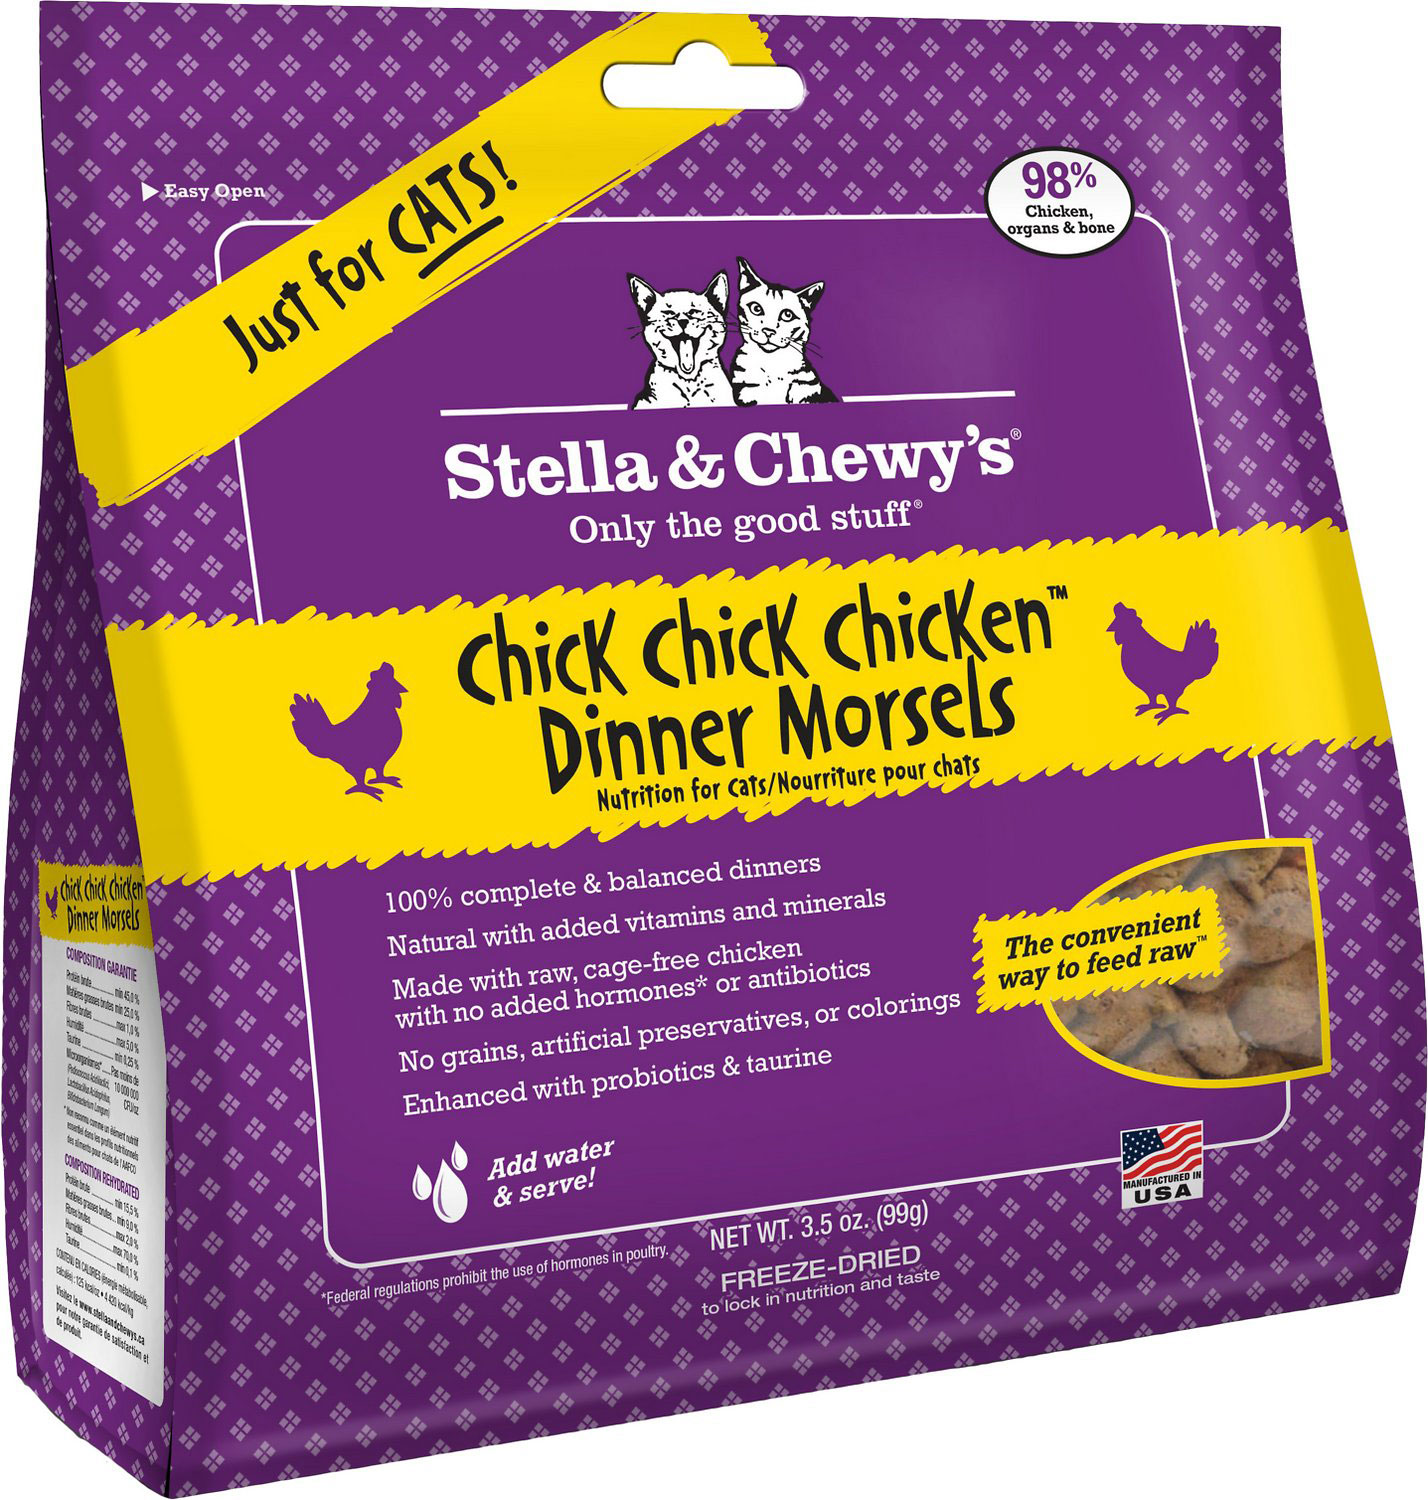 Stella & Chewy's® Chick Chick Chicken™ Dinner Morsels 3.5 oz. I012089